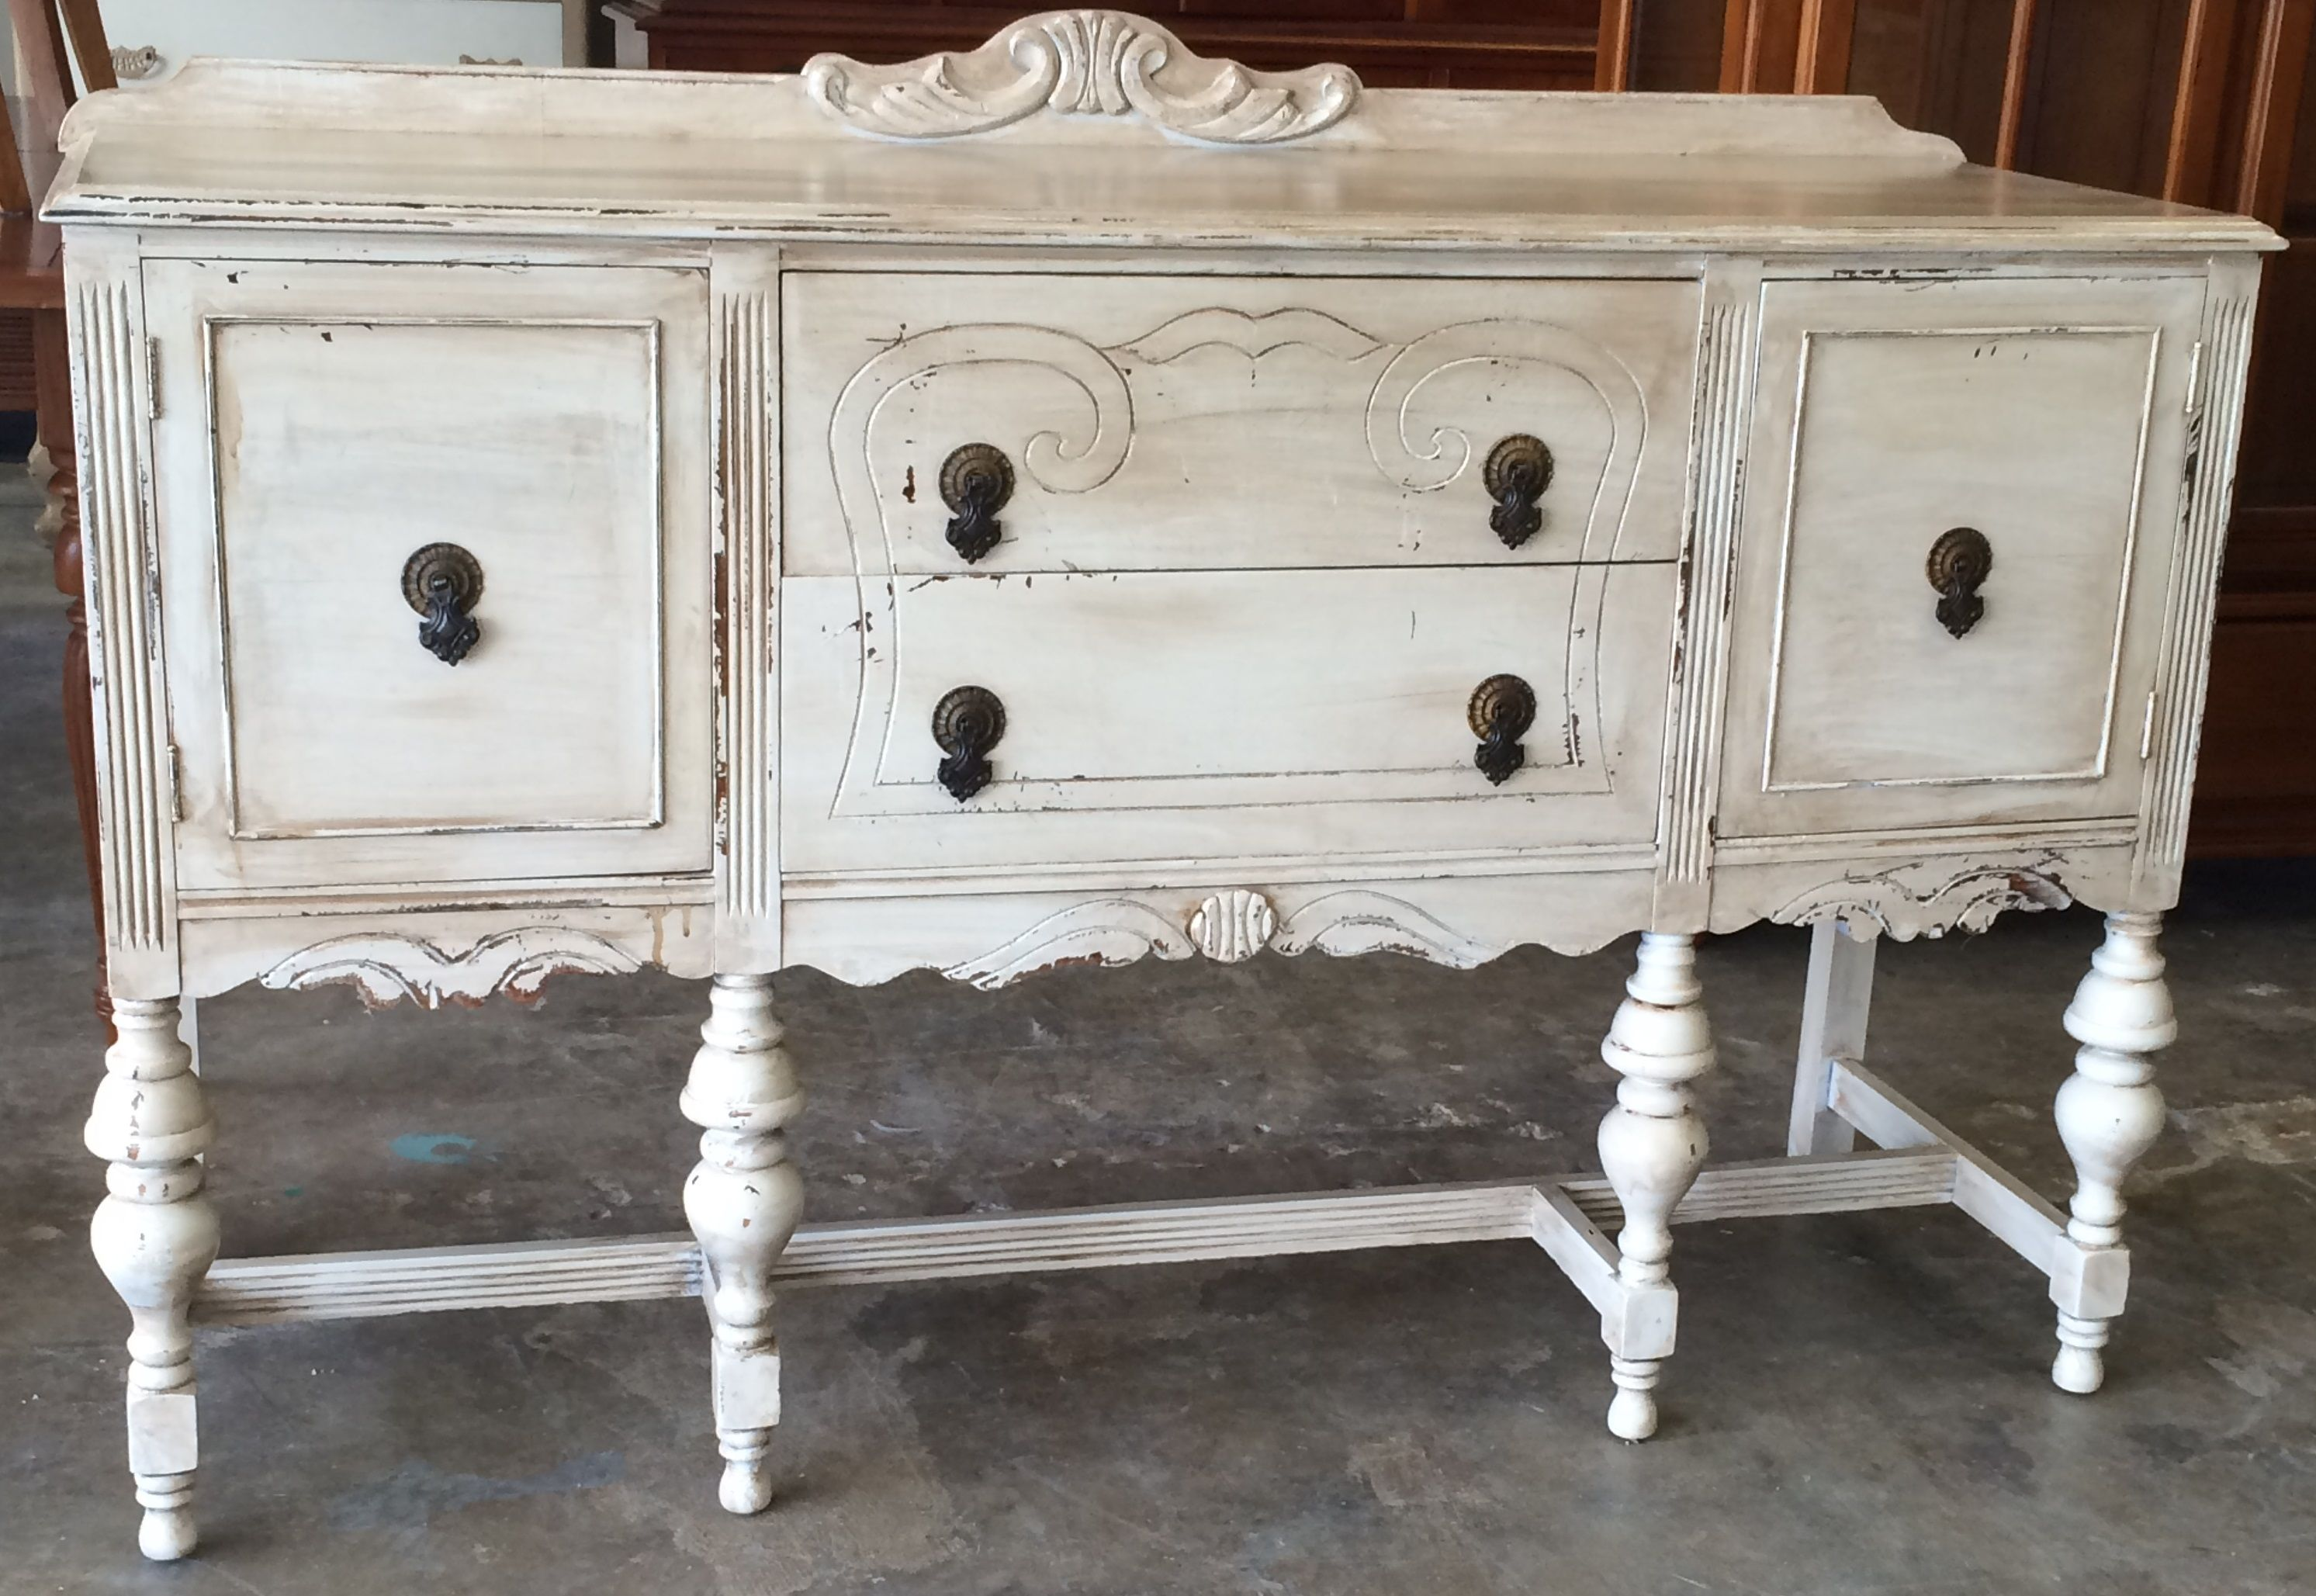 Check Out This Gorgeous Antique Buffet We Were Able To Bring It Back To Life And Paint It Antique Wh Shabby Chic Buffet Shabby Chic Dresser Furniture Makeover